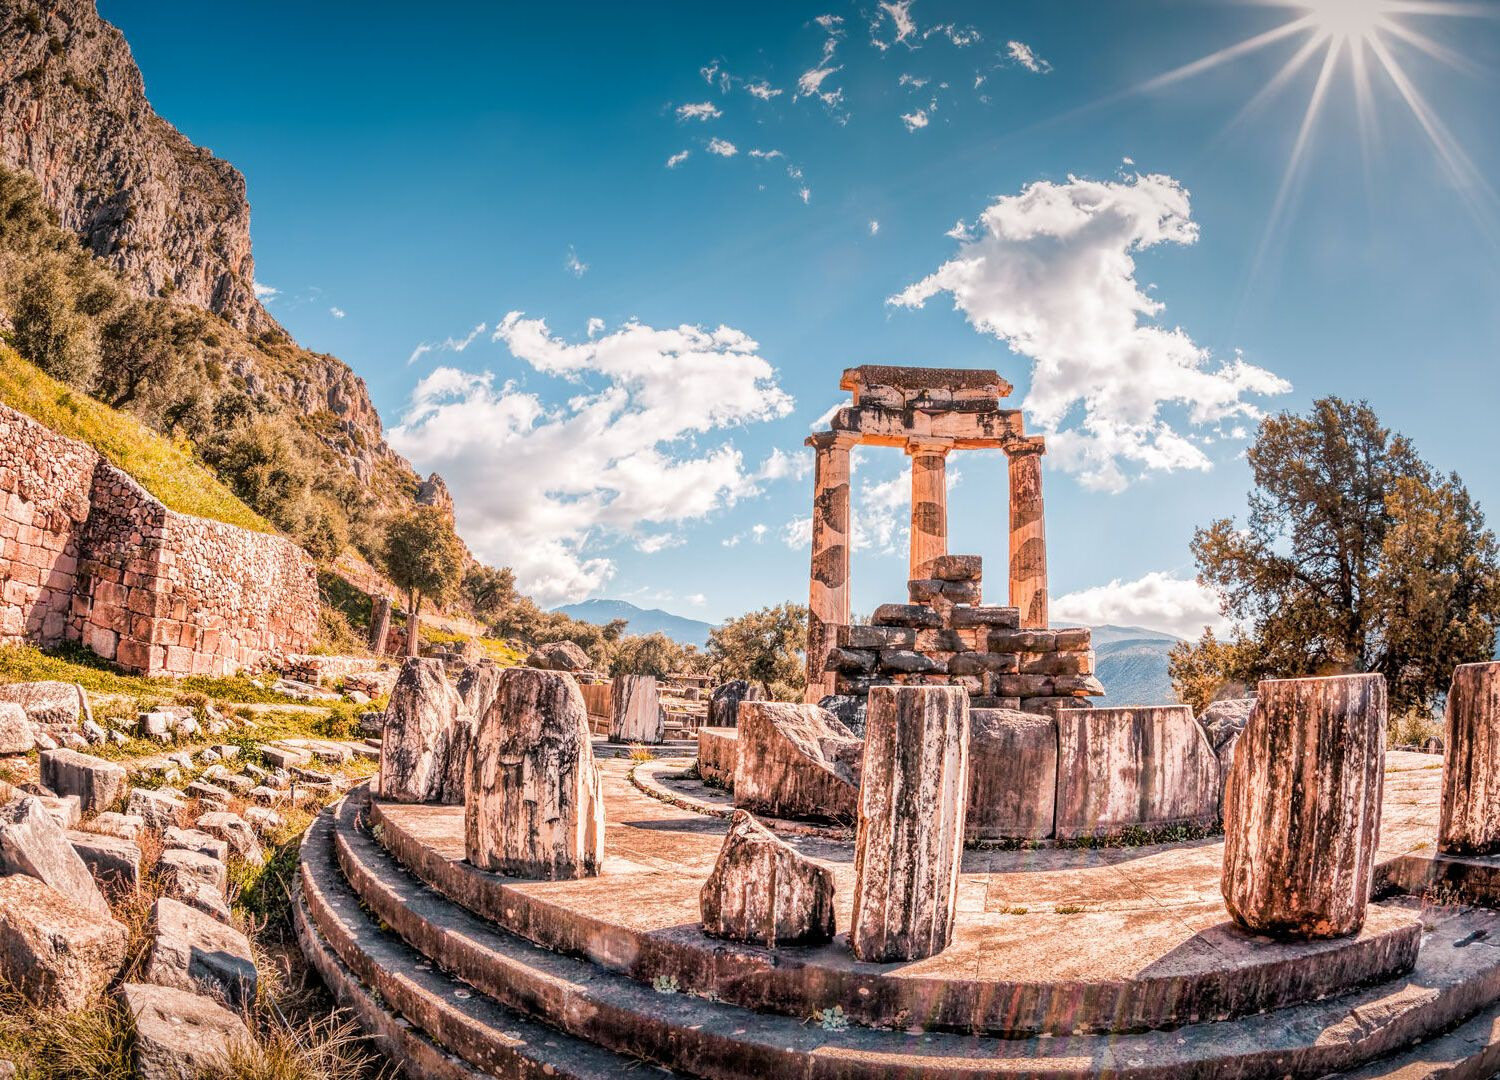 The Tholos of Athena Pronaia originally consisted of 20 Doric columns arranged around 10 Corinthian columns